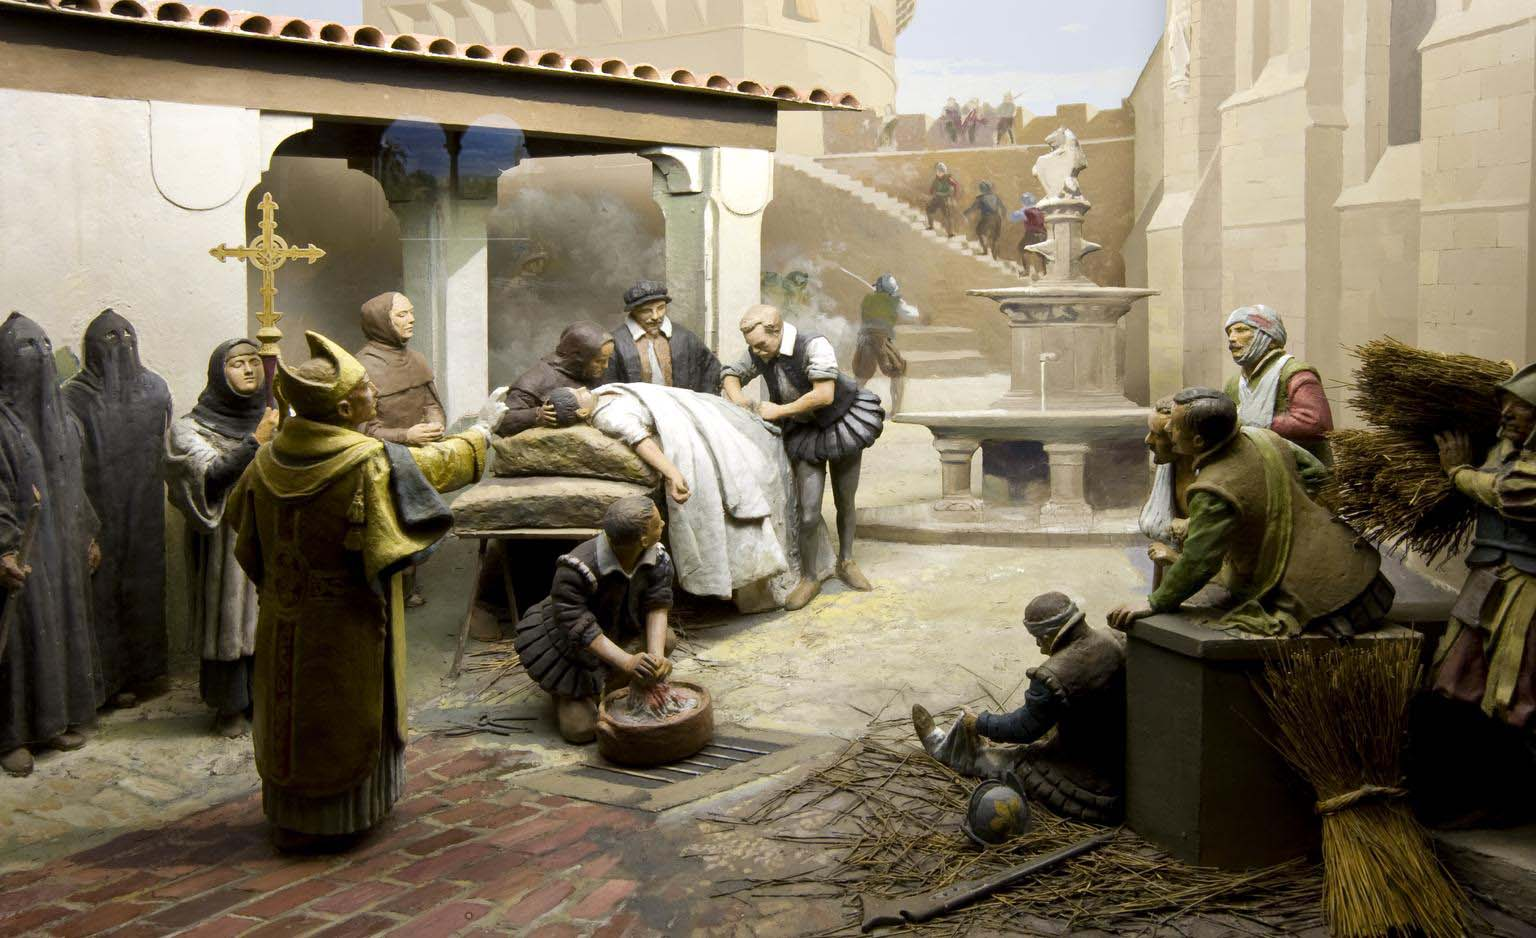 a model showing a medieval courtyard with a surgeon operating on a prone figure surrounded by medieval churchmen and other figures